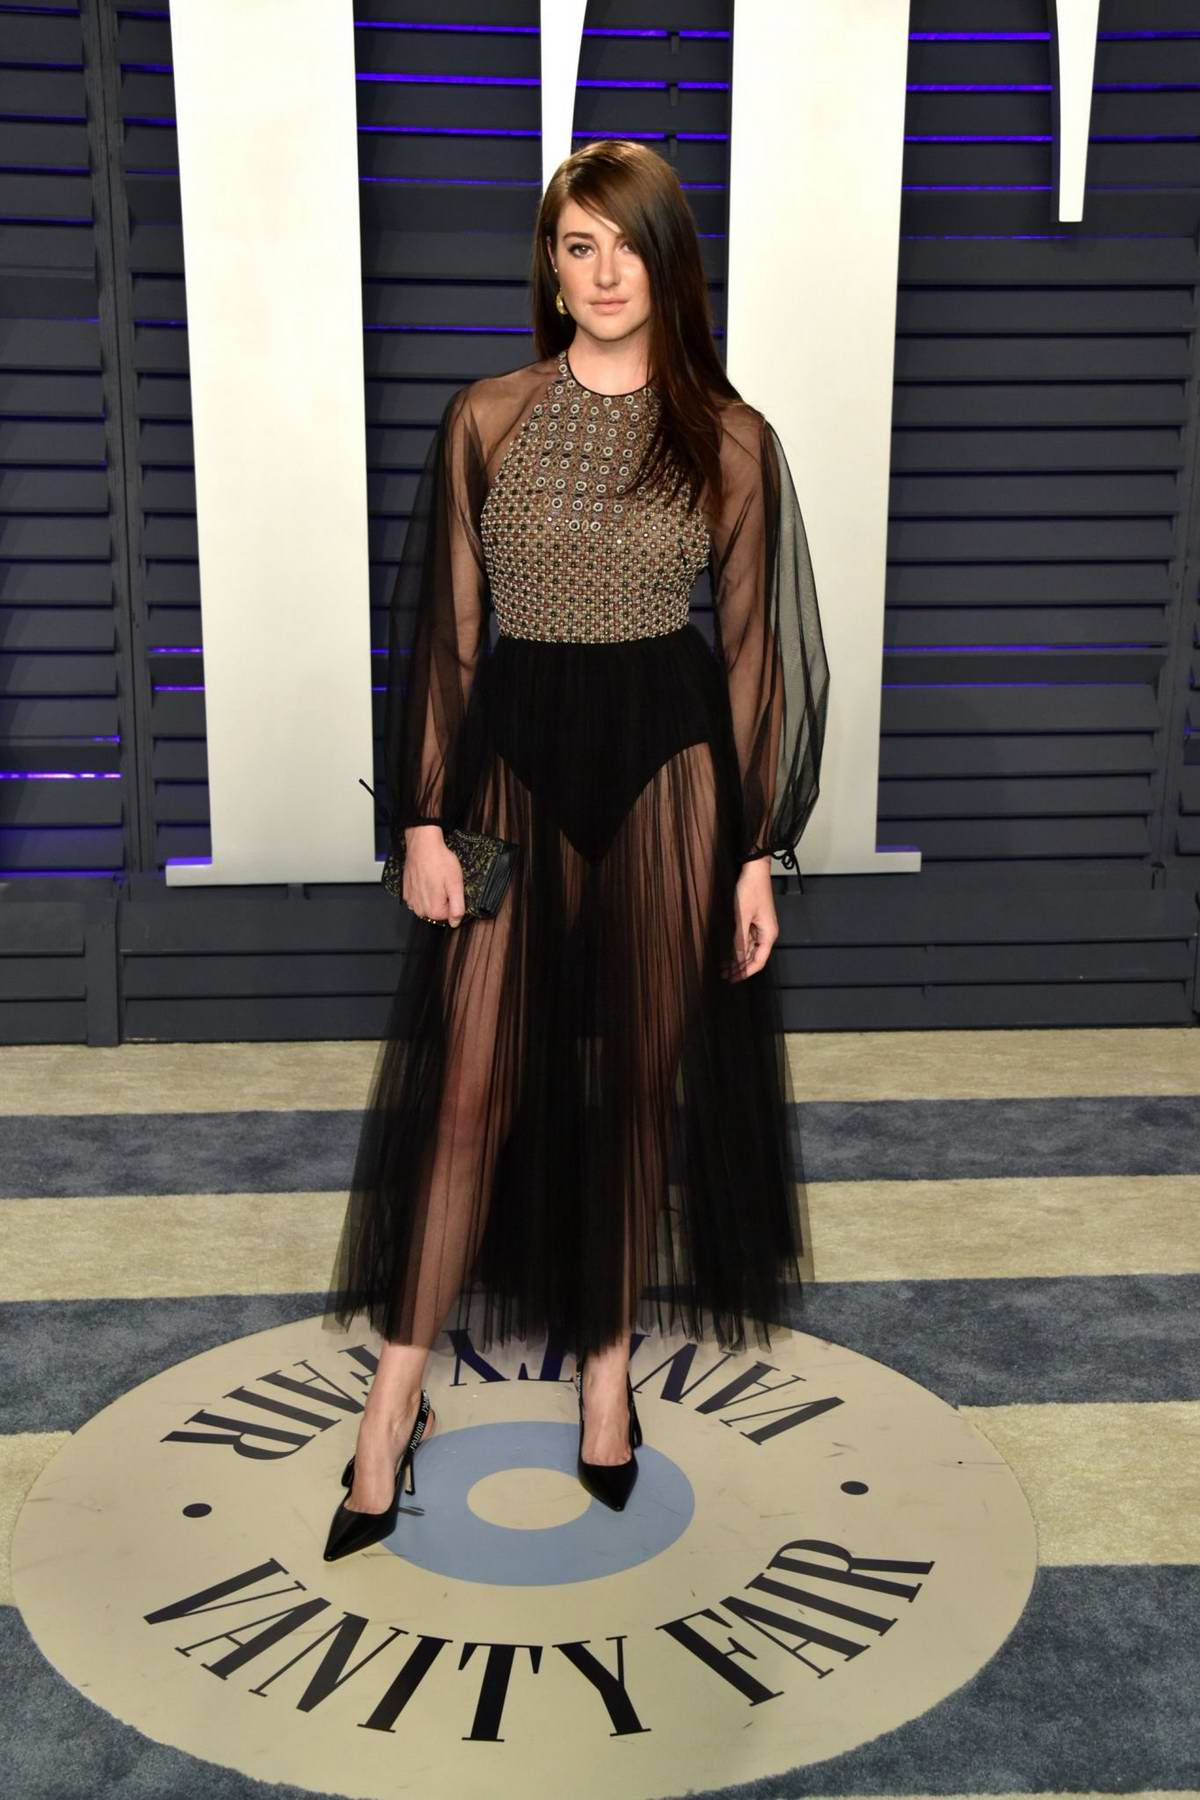 Rachel Weisz attends the 91st Annual Academy Awards (Oscars 2019) held at the Dolby Theatre in Hollywood, California 07:01 Event, Los Angeles, Oscars 2019 Emma Roberts attends the Vanity Fair Oscar Party at Wallis Annenberg Center for the Performing Arts in Beverly Hills, California-240219_# Party, Event, Los Angeles, Oscars 2019